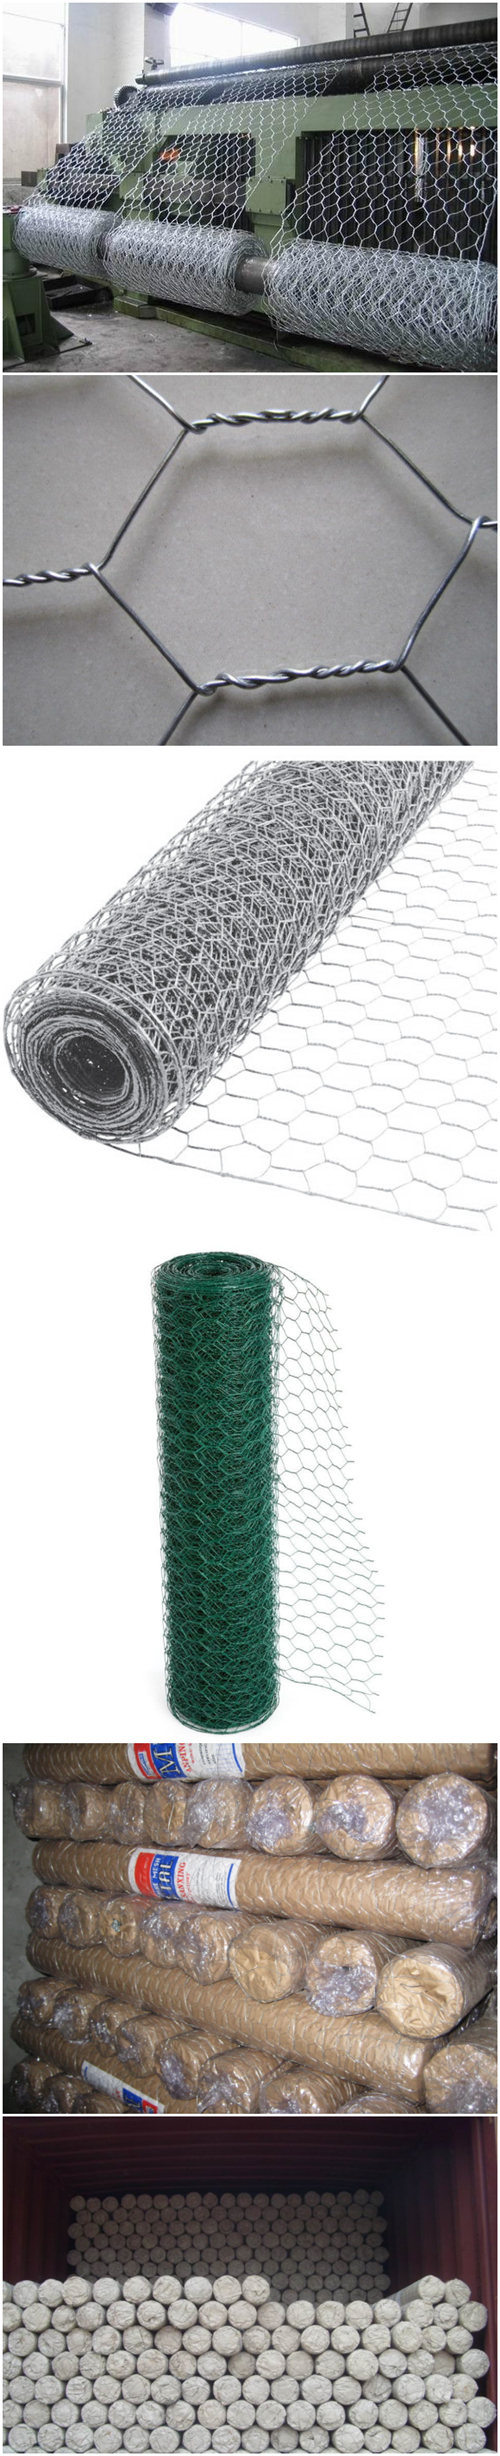 China Anping Green PVC Coated Hexagonal Wire Mesh Roll